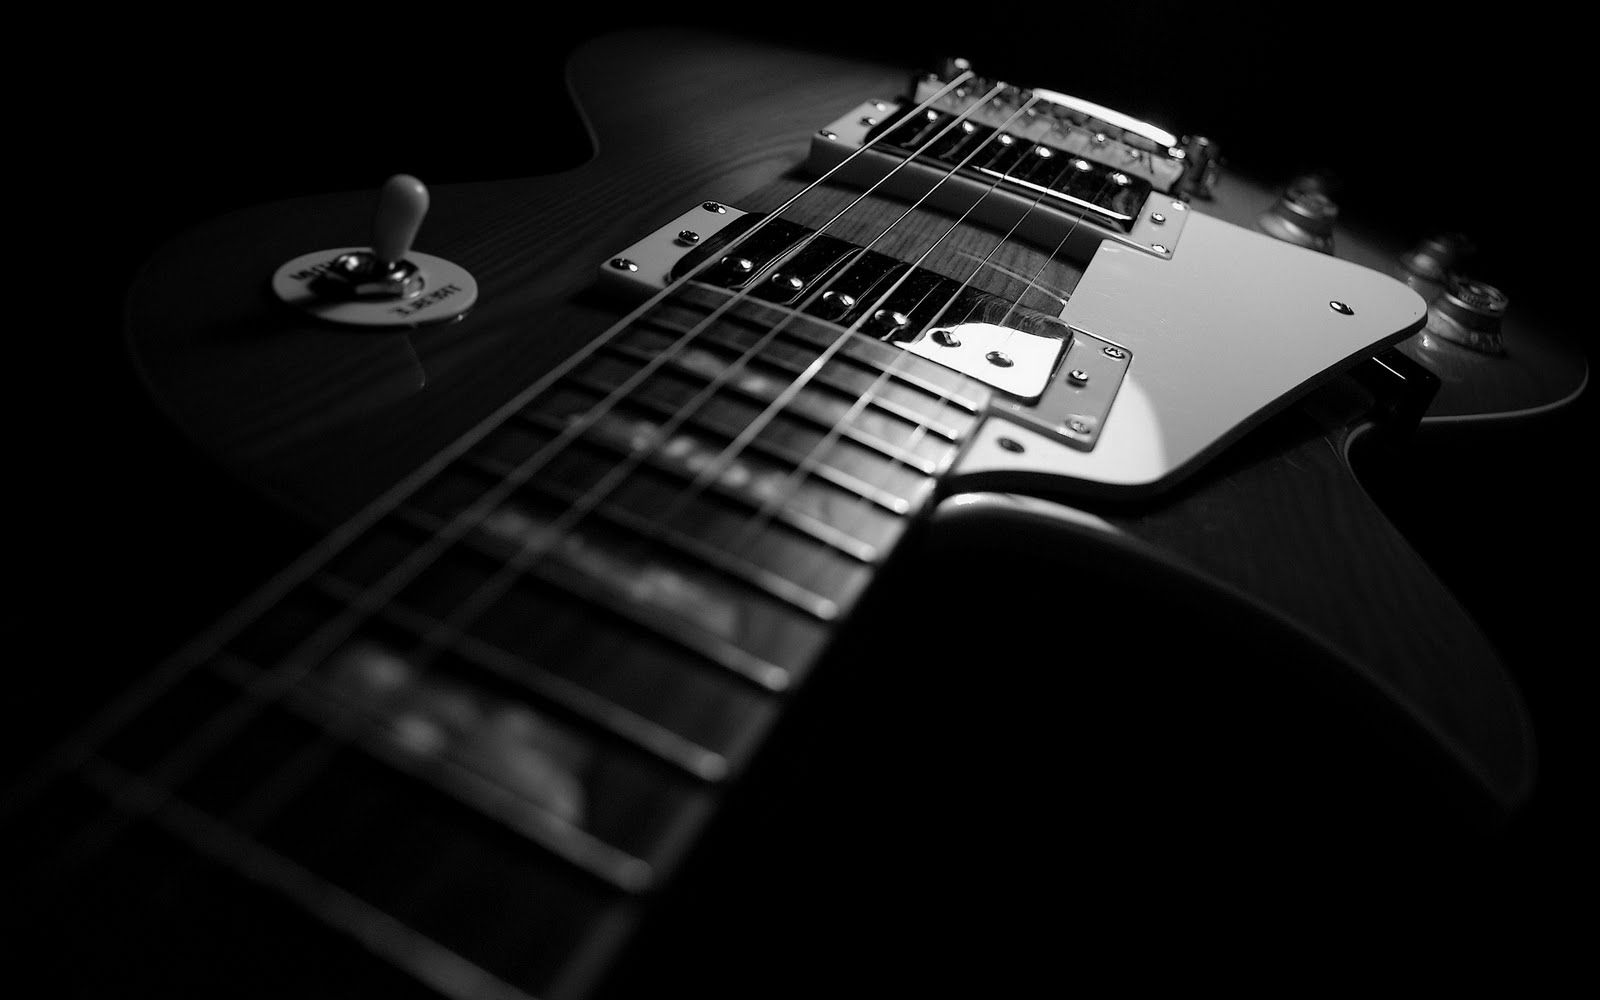 Guitar HD Wallpapers  Backgrounds  Wallpaper  1600x1000